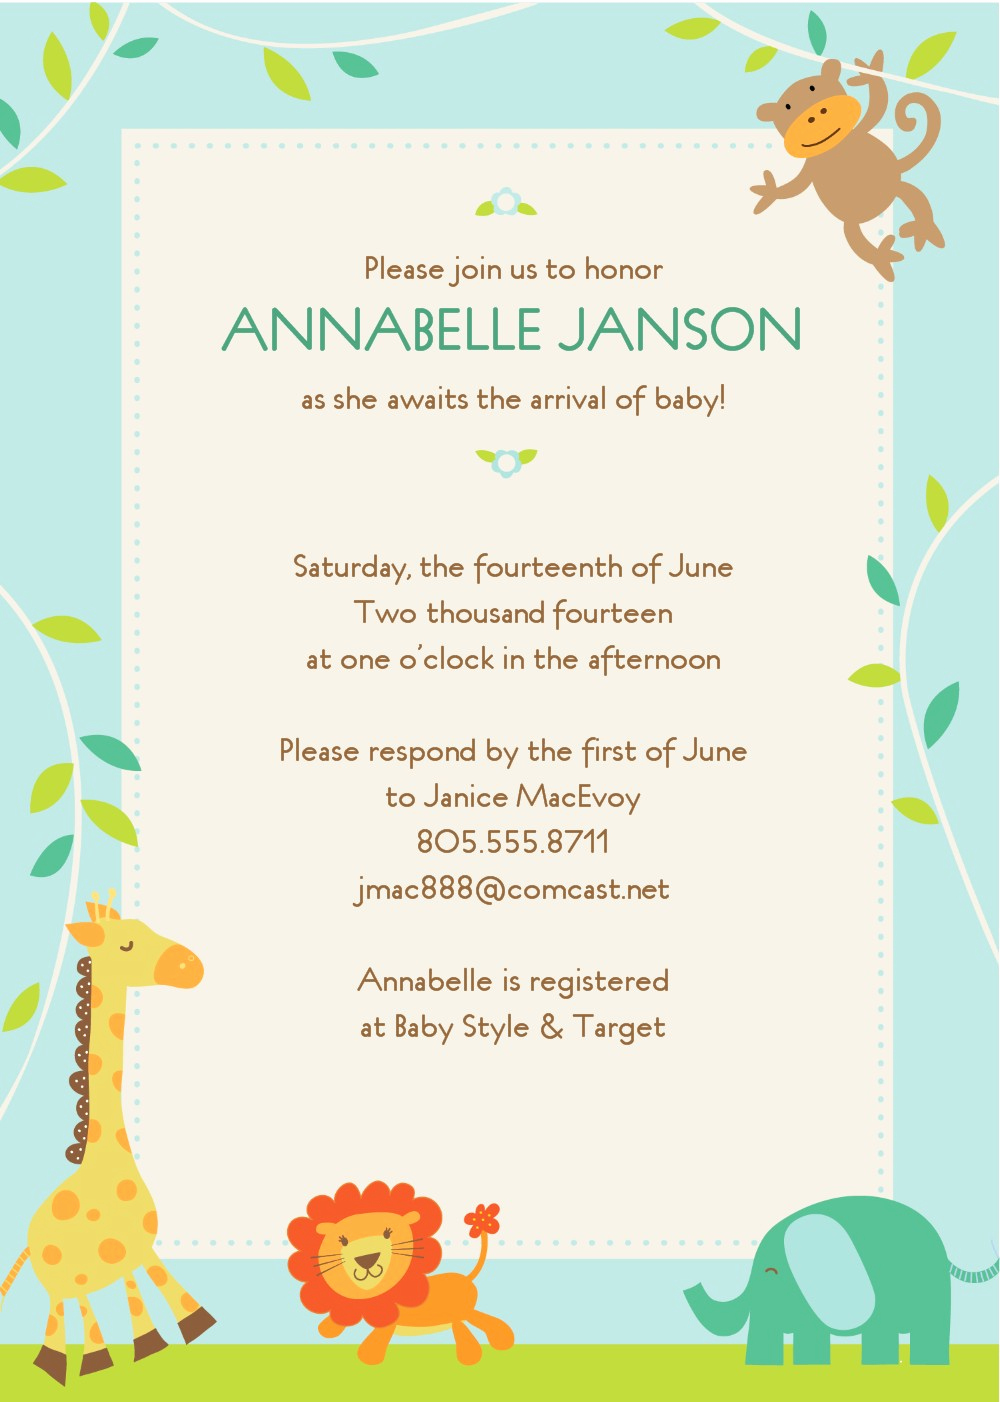 Free Baby Shower Invitation Templates Beautiful Free Baby Shower Invitation Templates to Print at Home